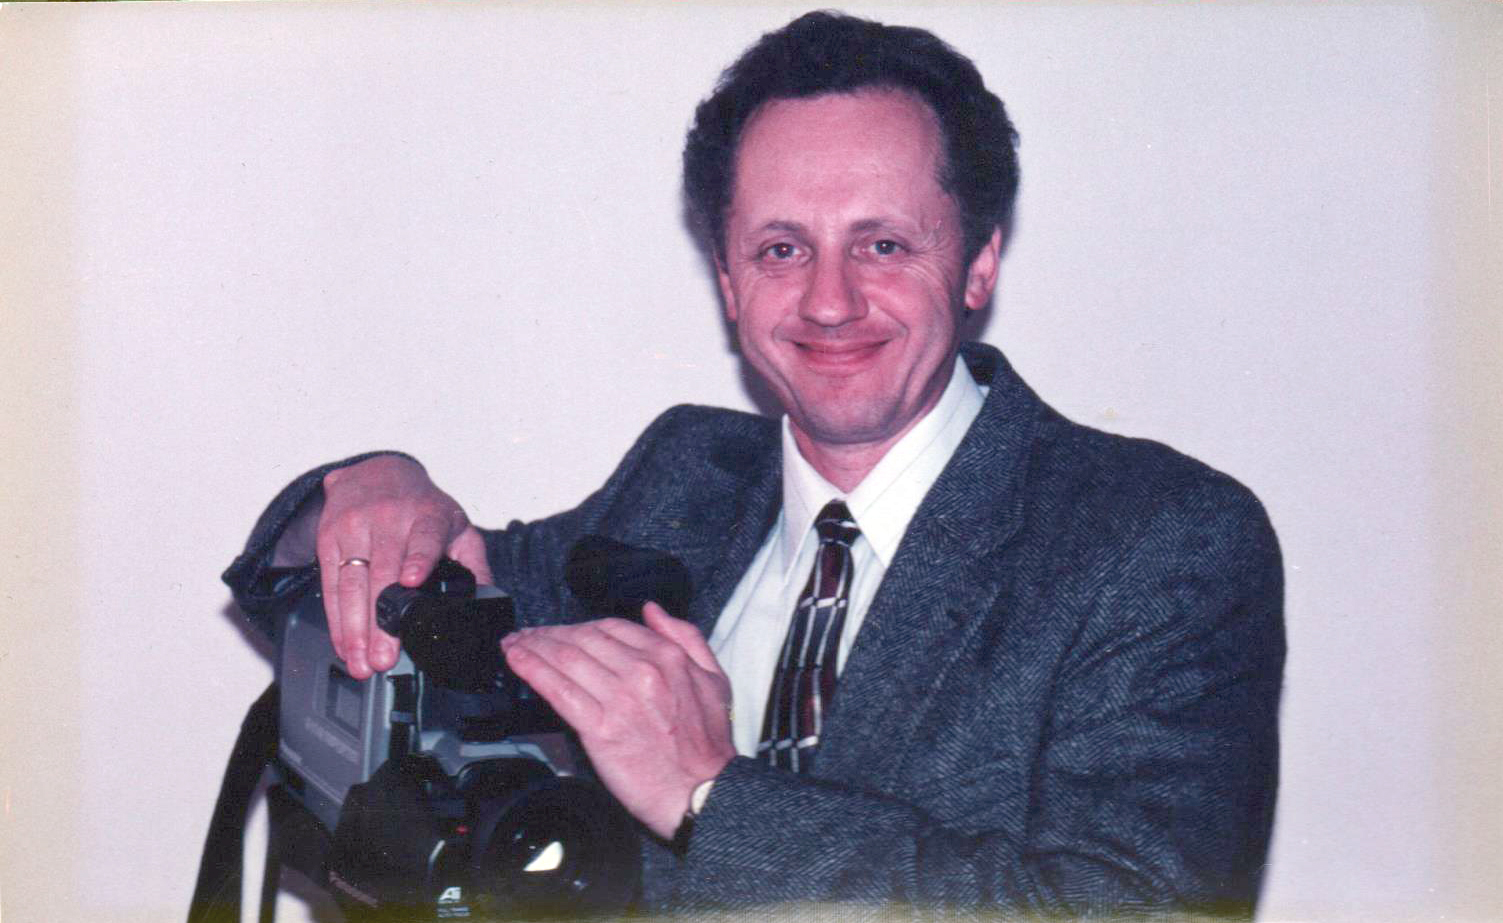 igor yevelev with panasonic camcorder